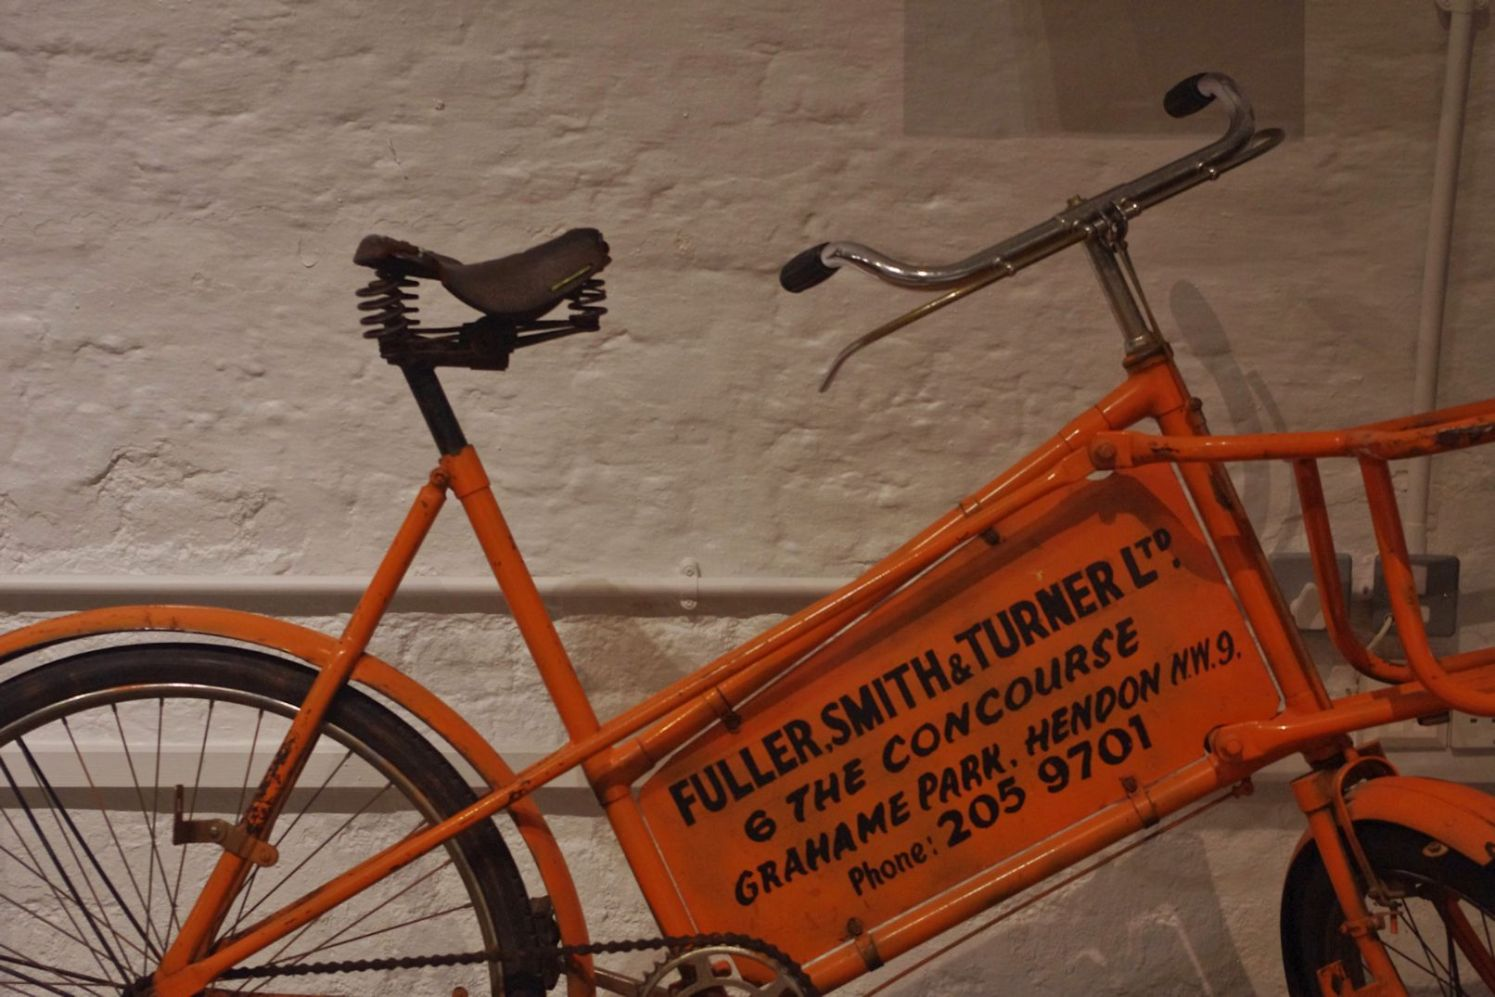 Griffin Brewery delivery bike